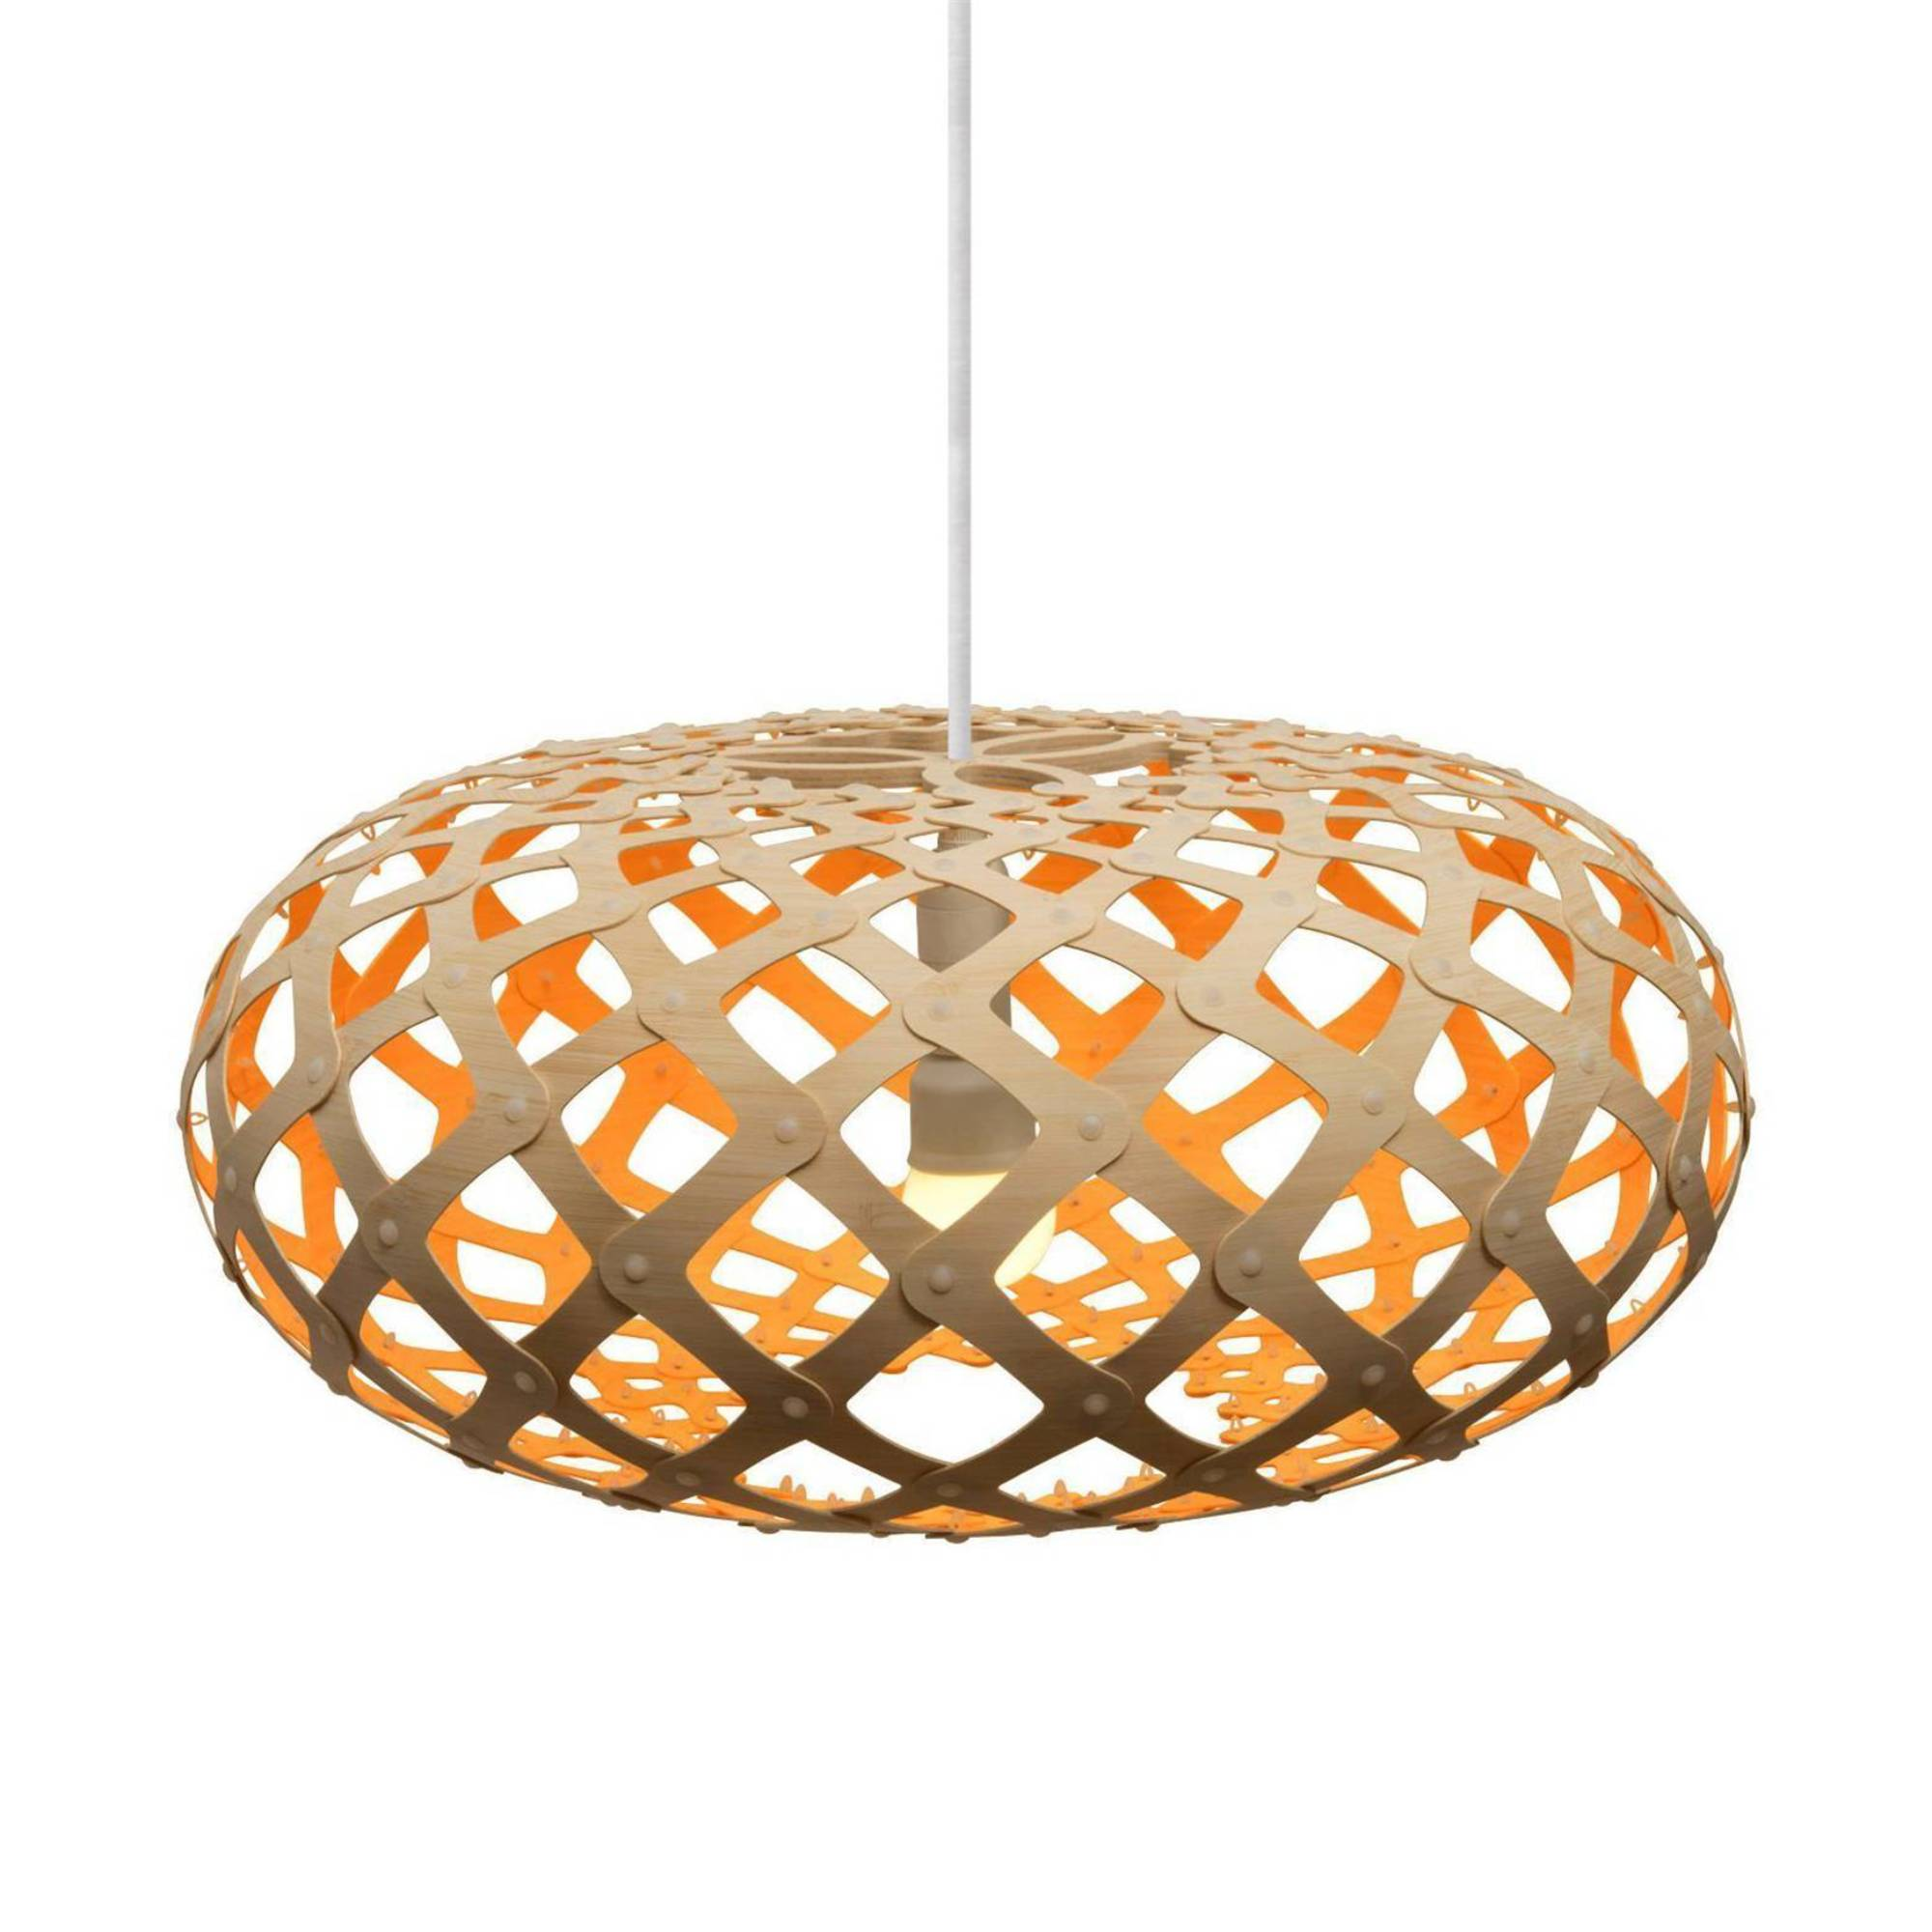 Kina Pendant Light: 800 + Orange